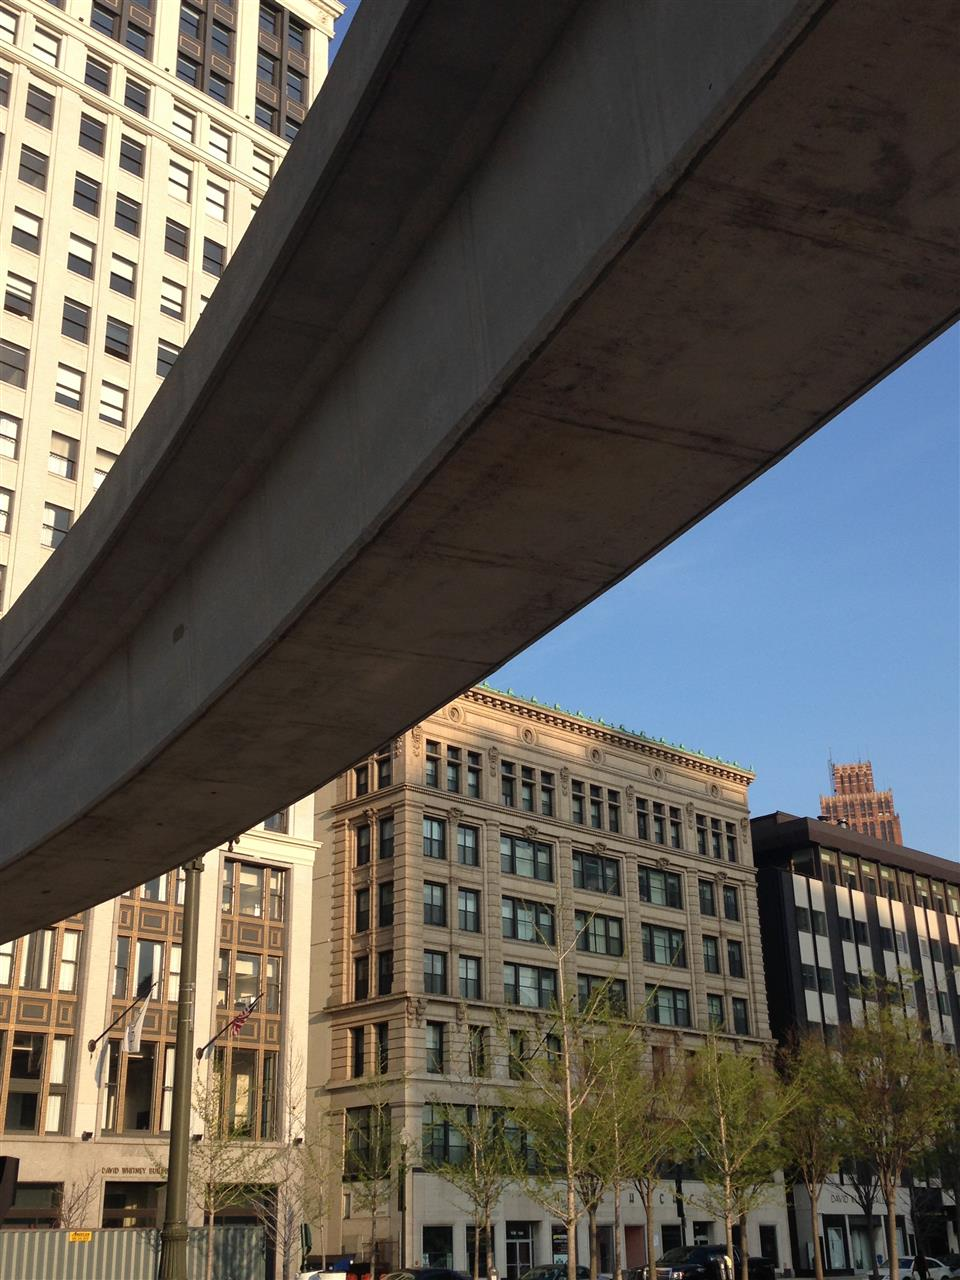 People Mover rail and downtown buildings. The People Mover is an automated guideway transportation system that circulates around downtown Detroit. ~ Detroit, Michigan #LeadingRElocal #Detroit #Michigan